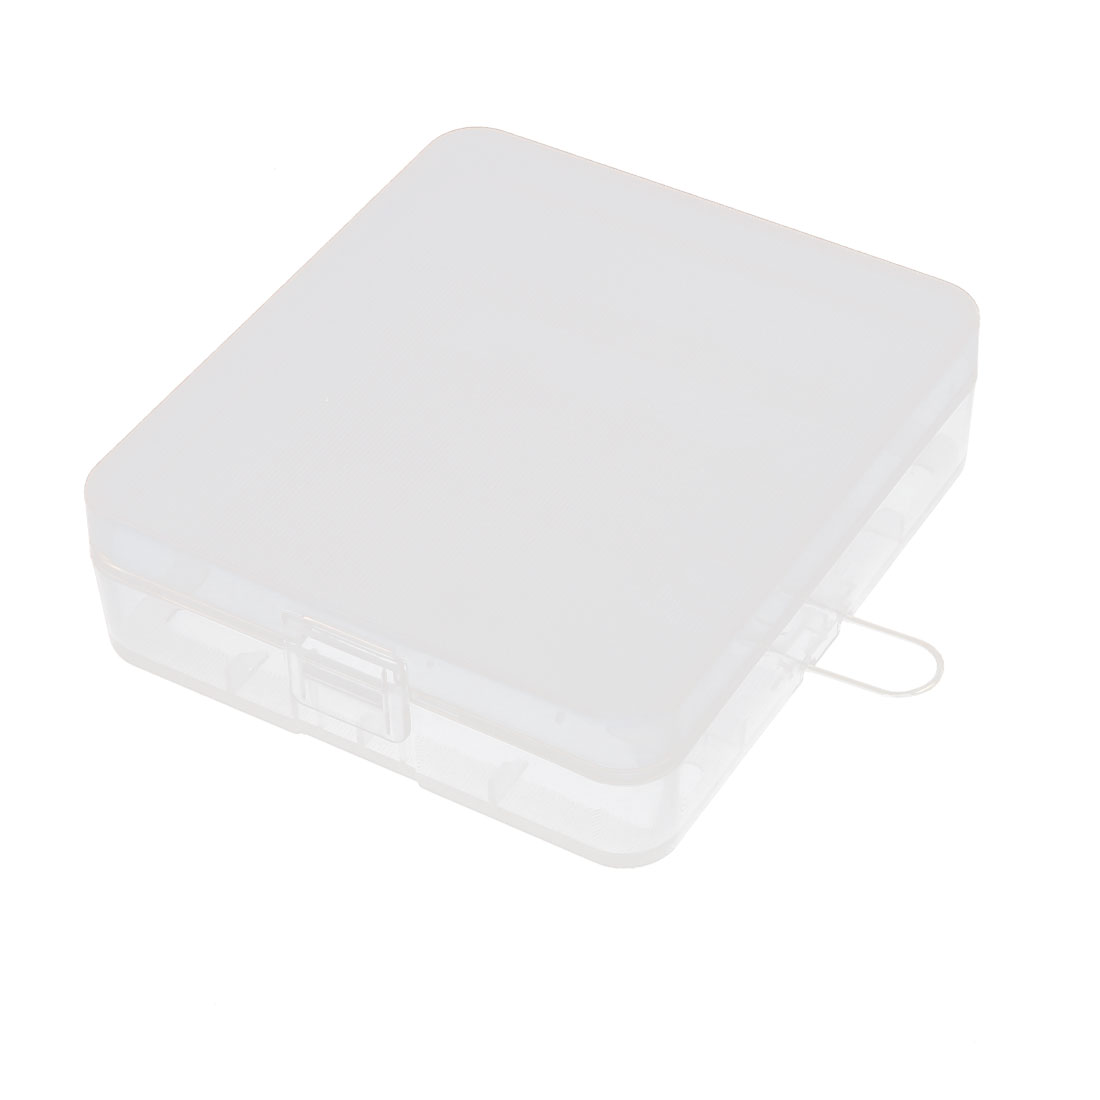 Hard Plastic Case Holder Storage Box Container for 18650 Battery